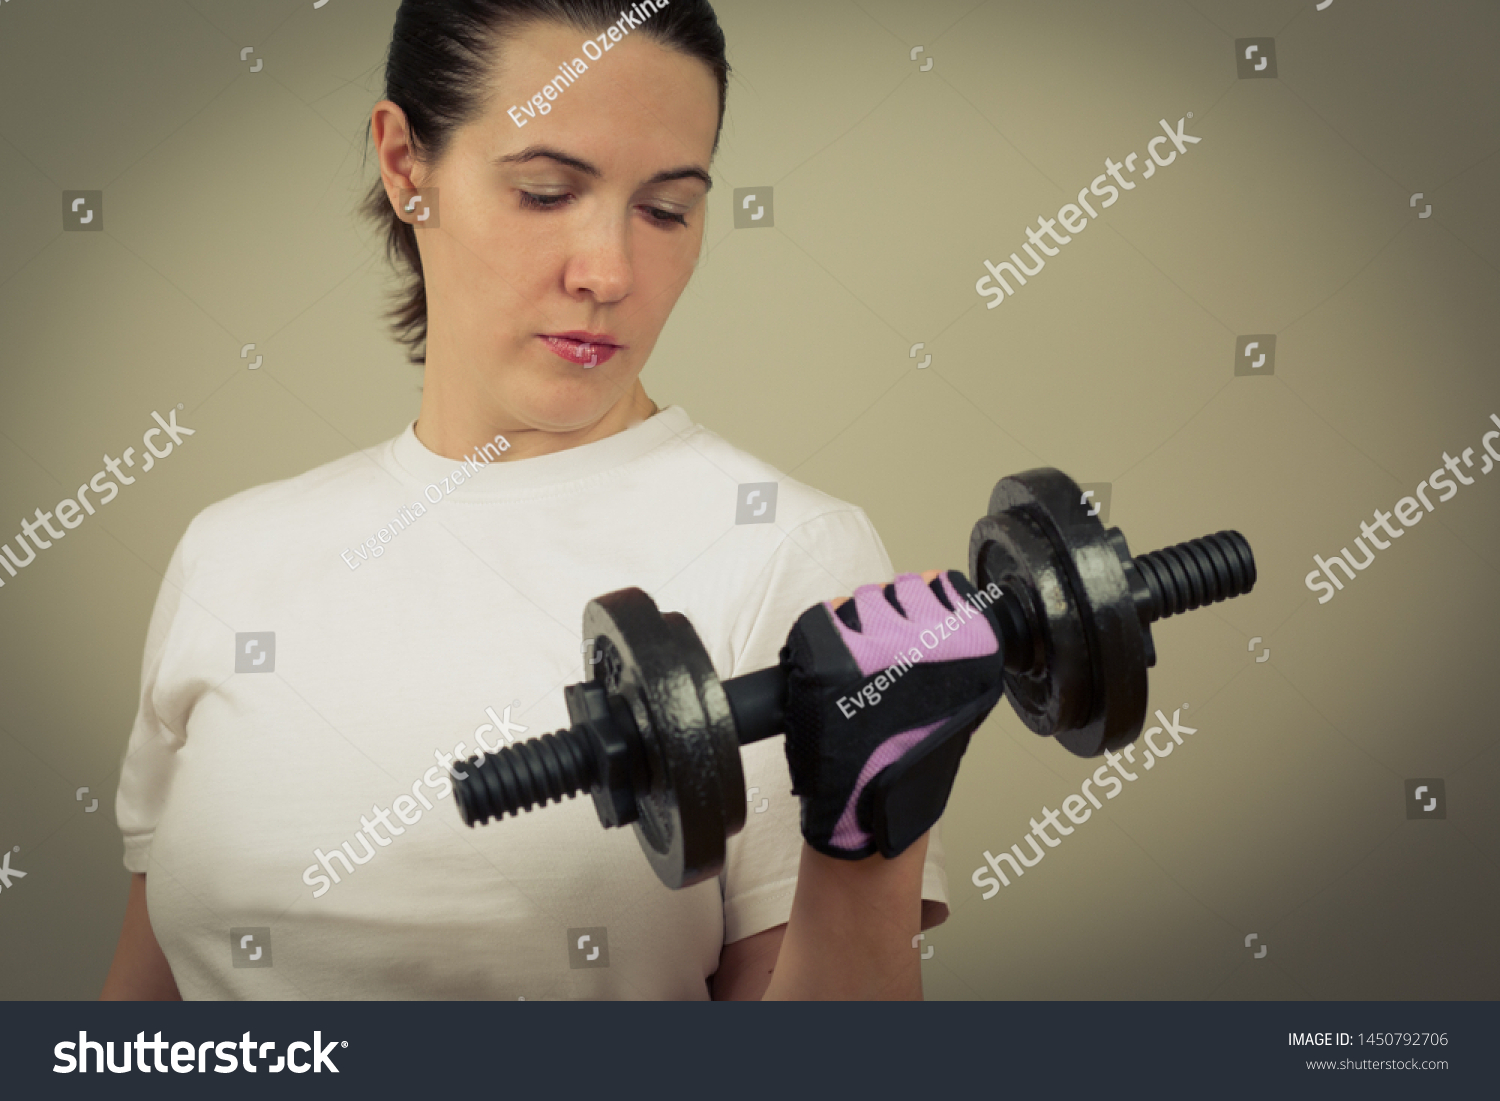 Portrait of a white caucasian woman holding heavy iron dumbbells close-up. Toned image in green gray